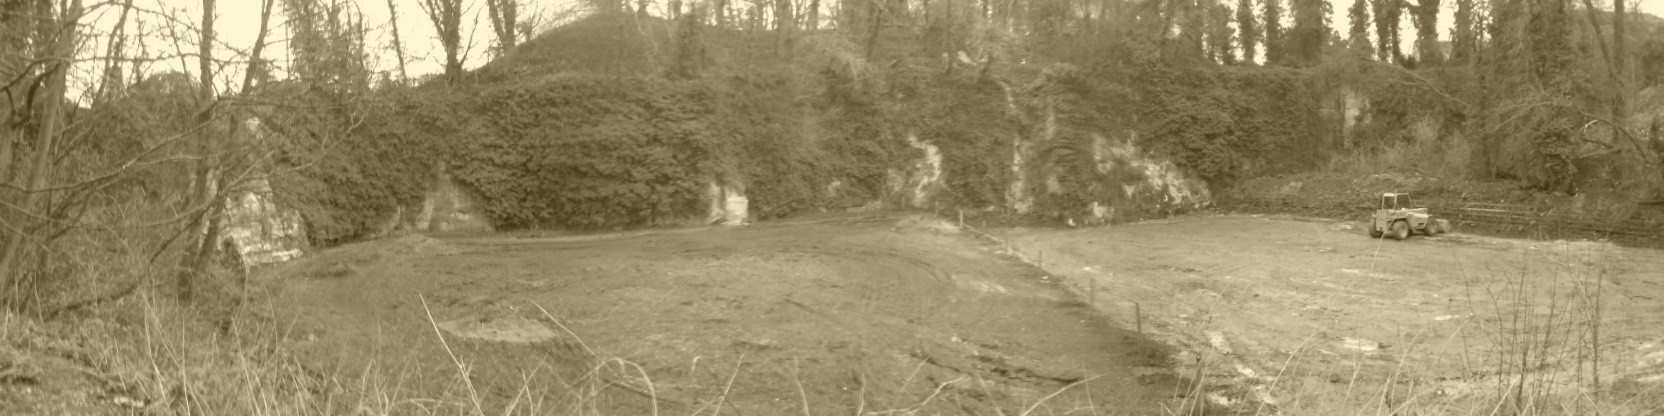 Replacing the very badly damaged surface which had been terribly contaminated with soil, droppings and hay over years.